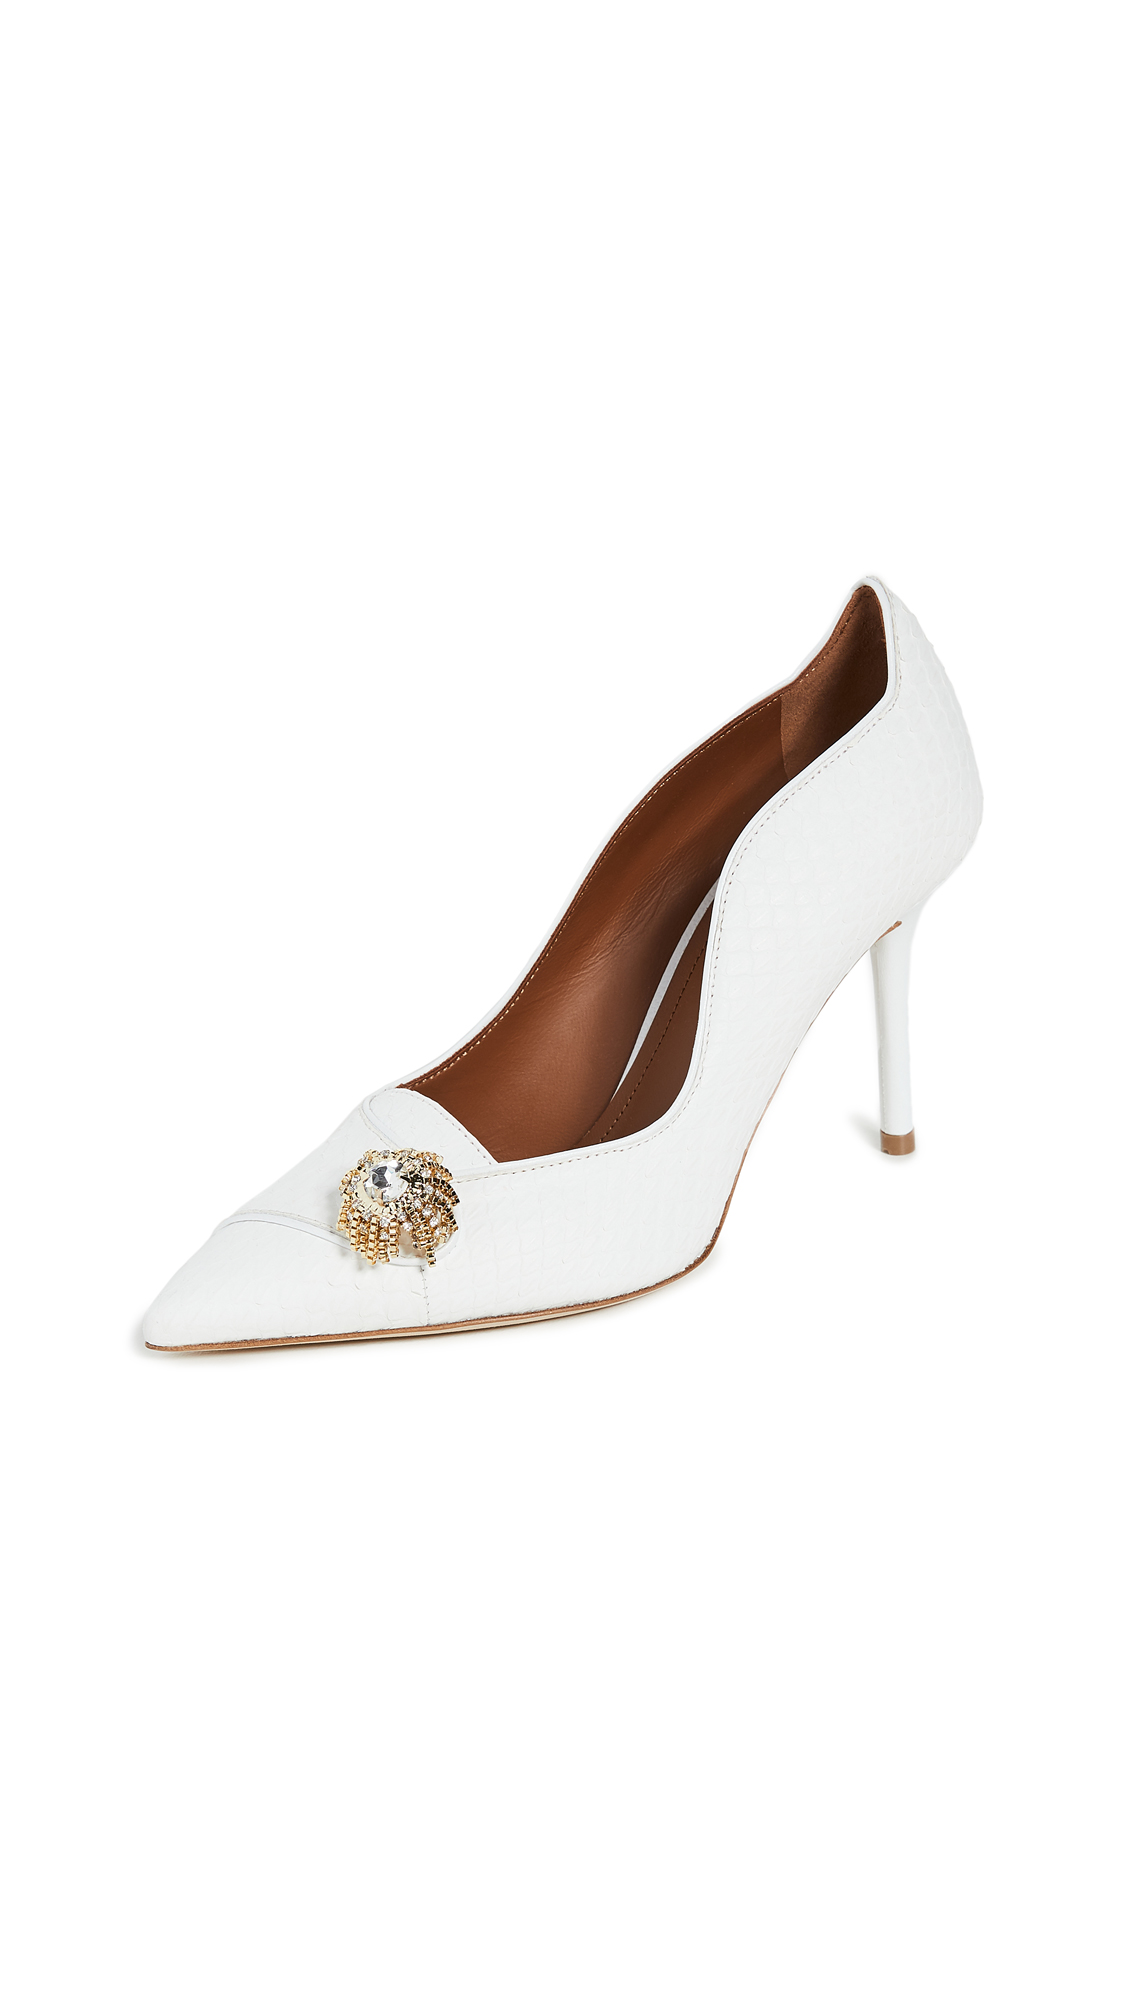 Buy Malone Souliers 85mm Alessia Pumps online, shop Malone Souliers